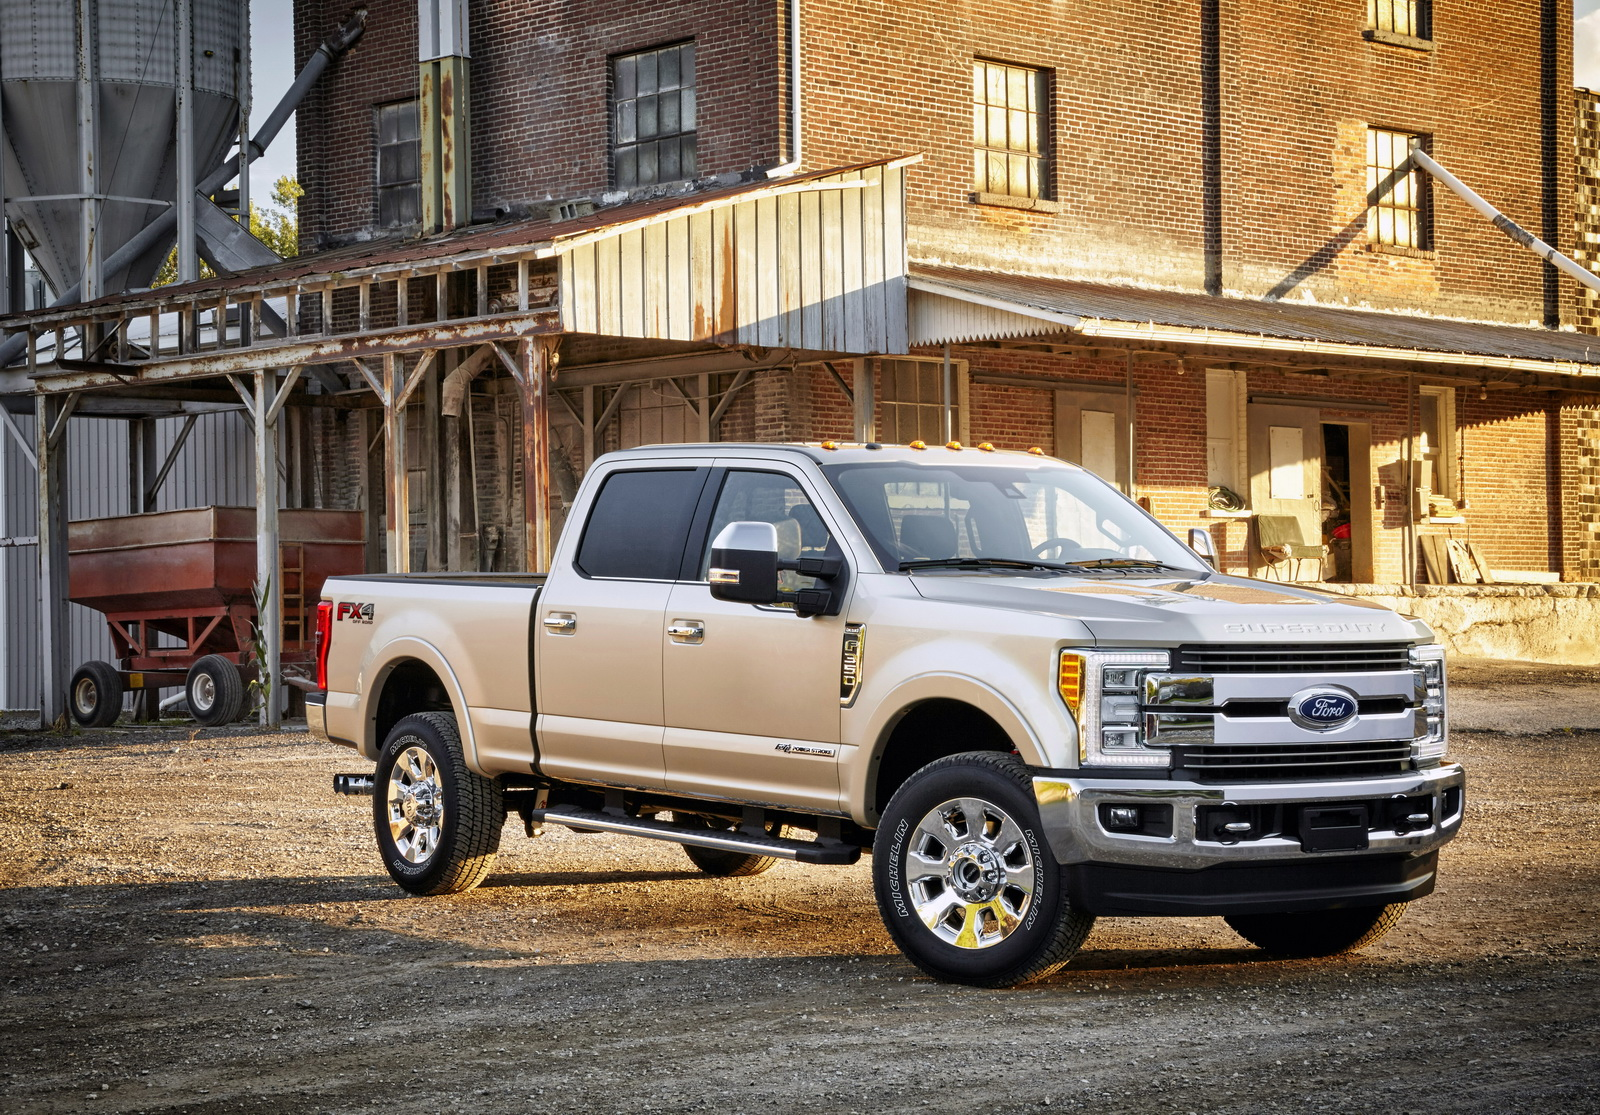 Henry Ford's vision to create a vehicle with a cab and work-duty frame capable of accommodating cargo beds and third-party upfit equipment proudly endures a century later in the Built Ford Tough F-Series lineup – from F-150 to F-750 Super Duty